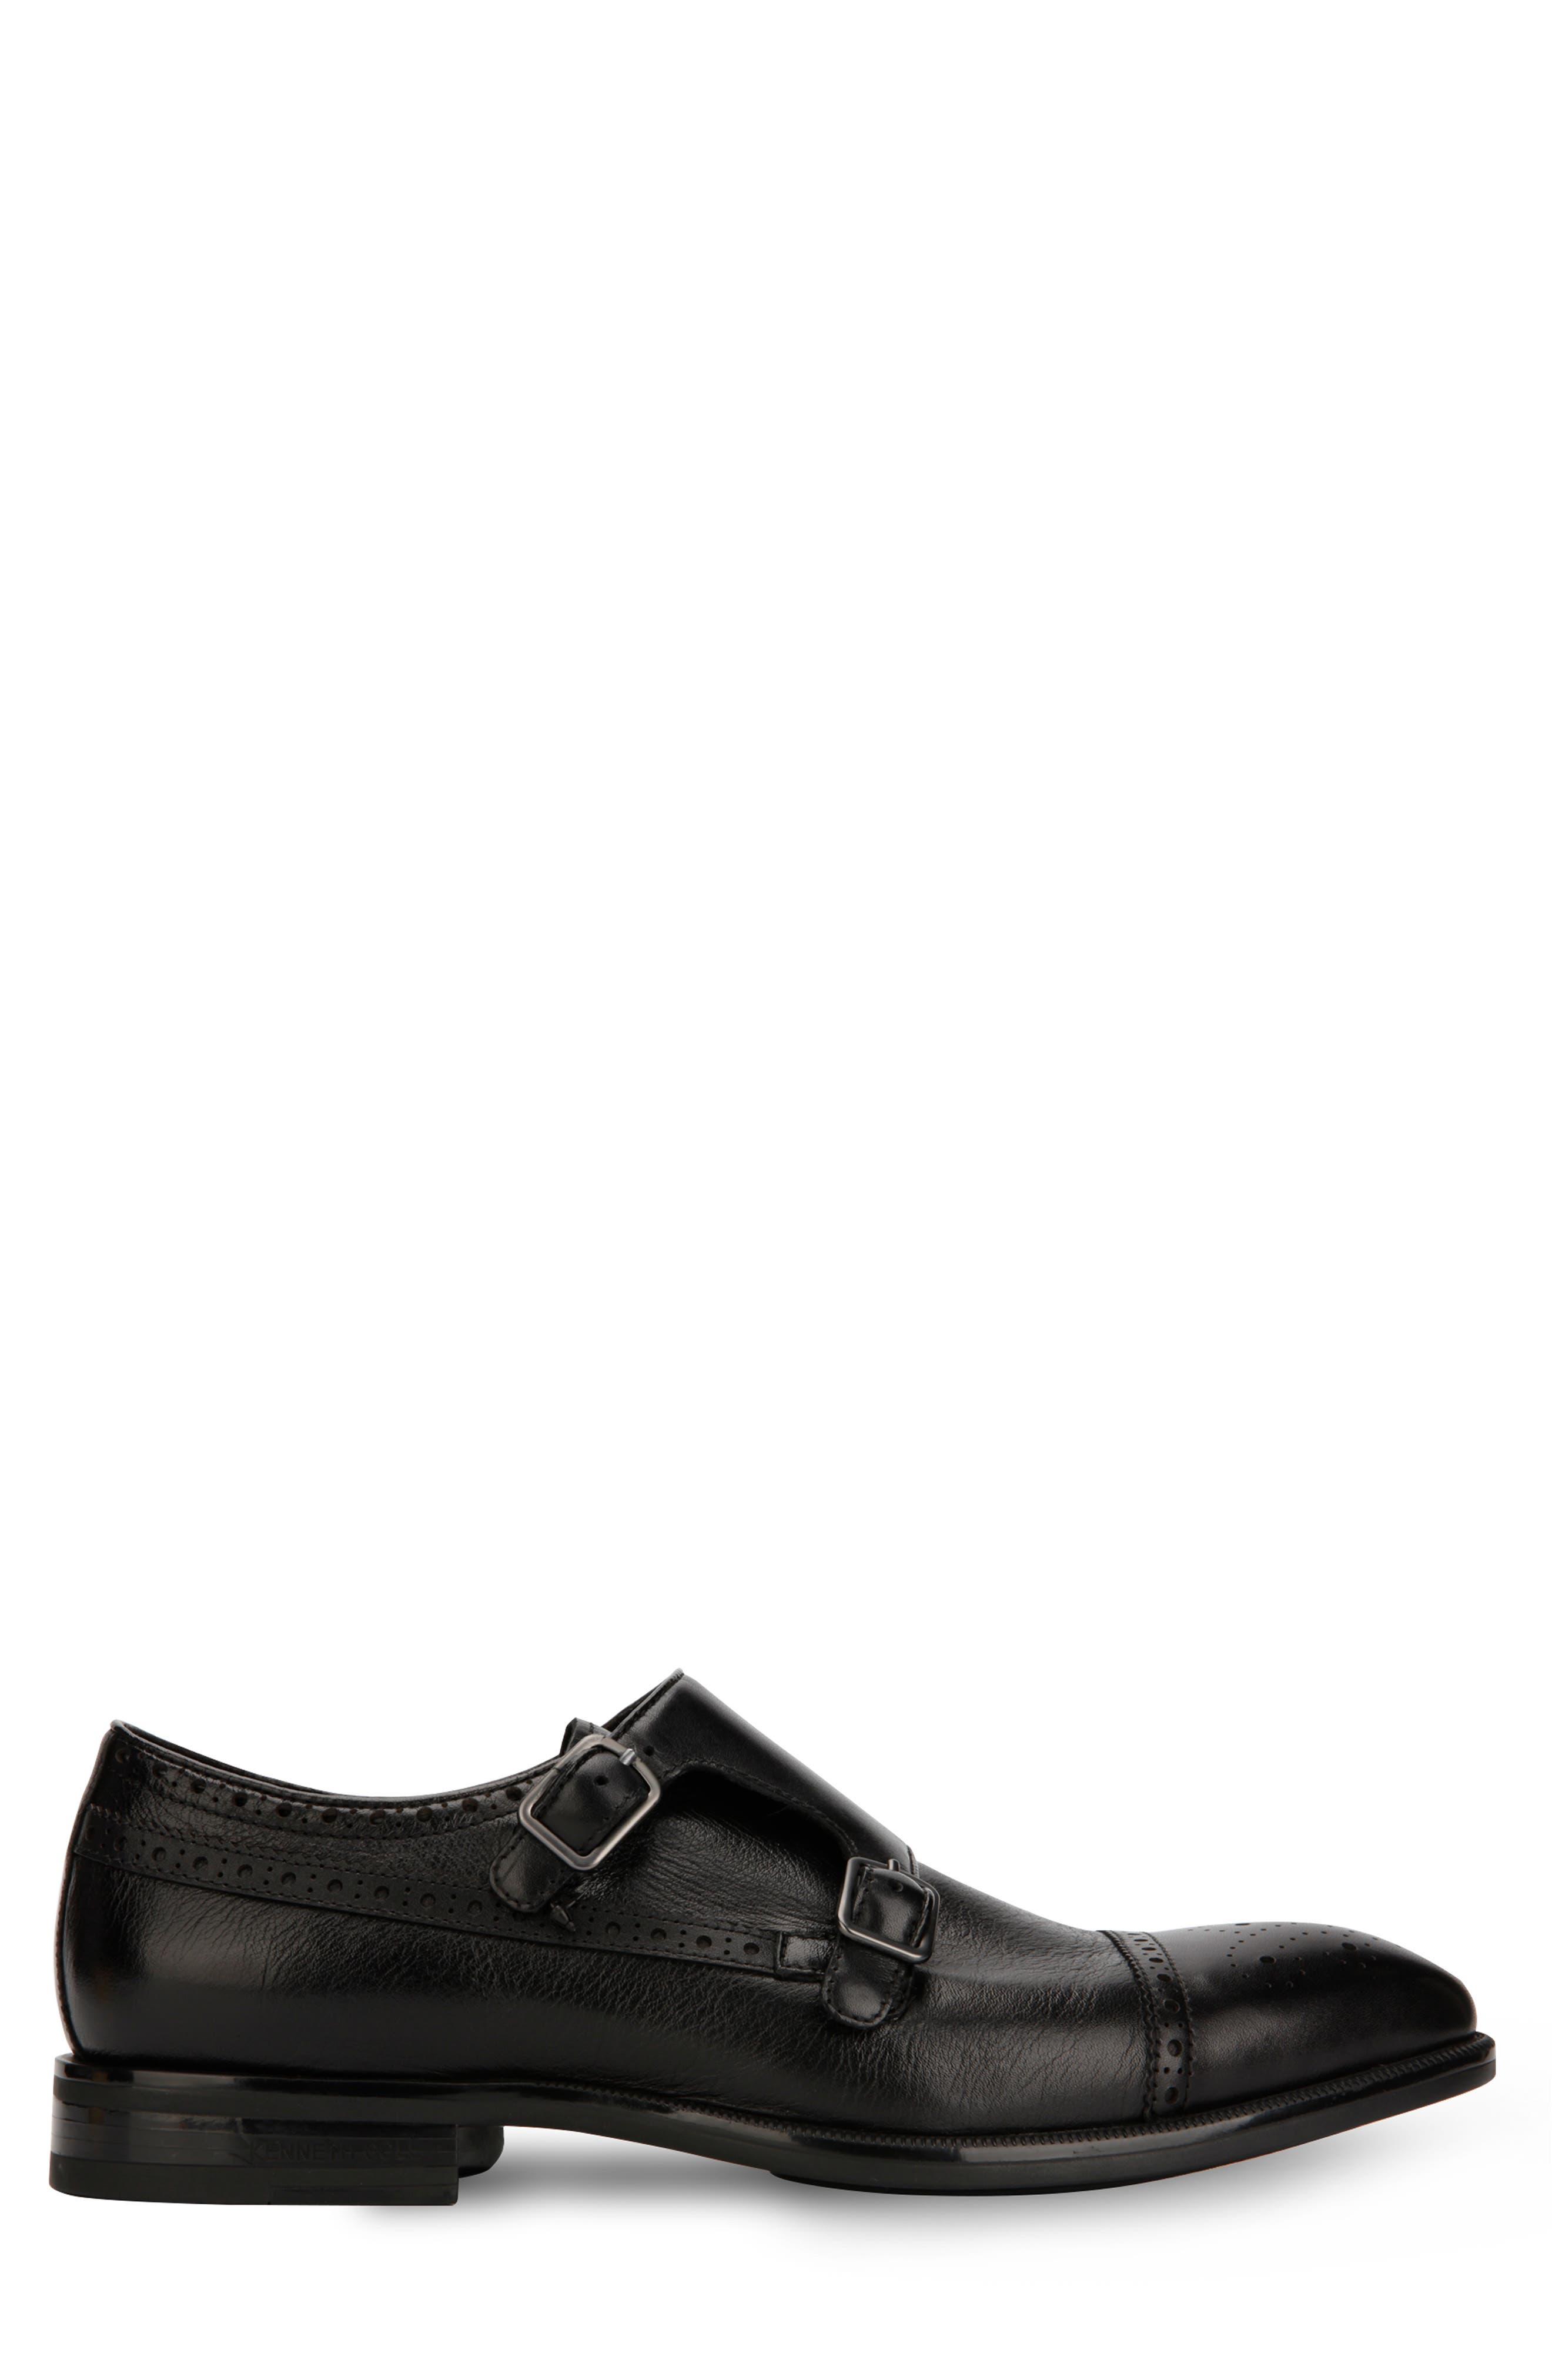 KENNETH COLE NEW YORK, Futurepod Double Monk Strap Shoe, Alternate thumbnail 2, color, BLACK TUMBLED LEATHER